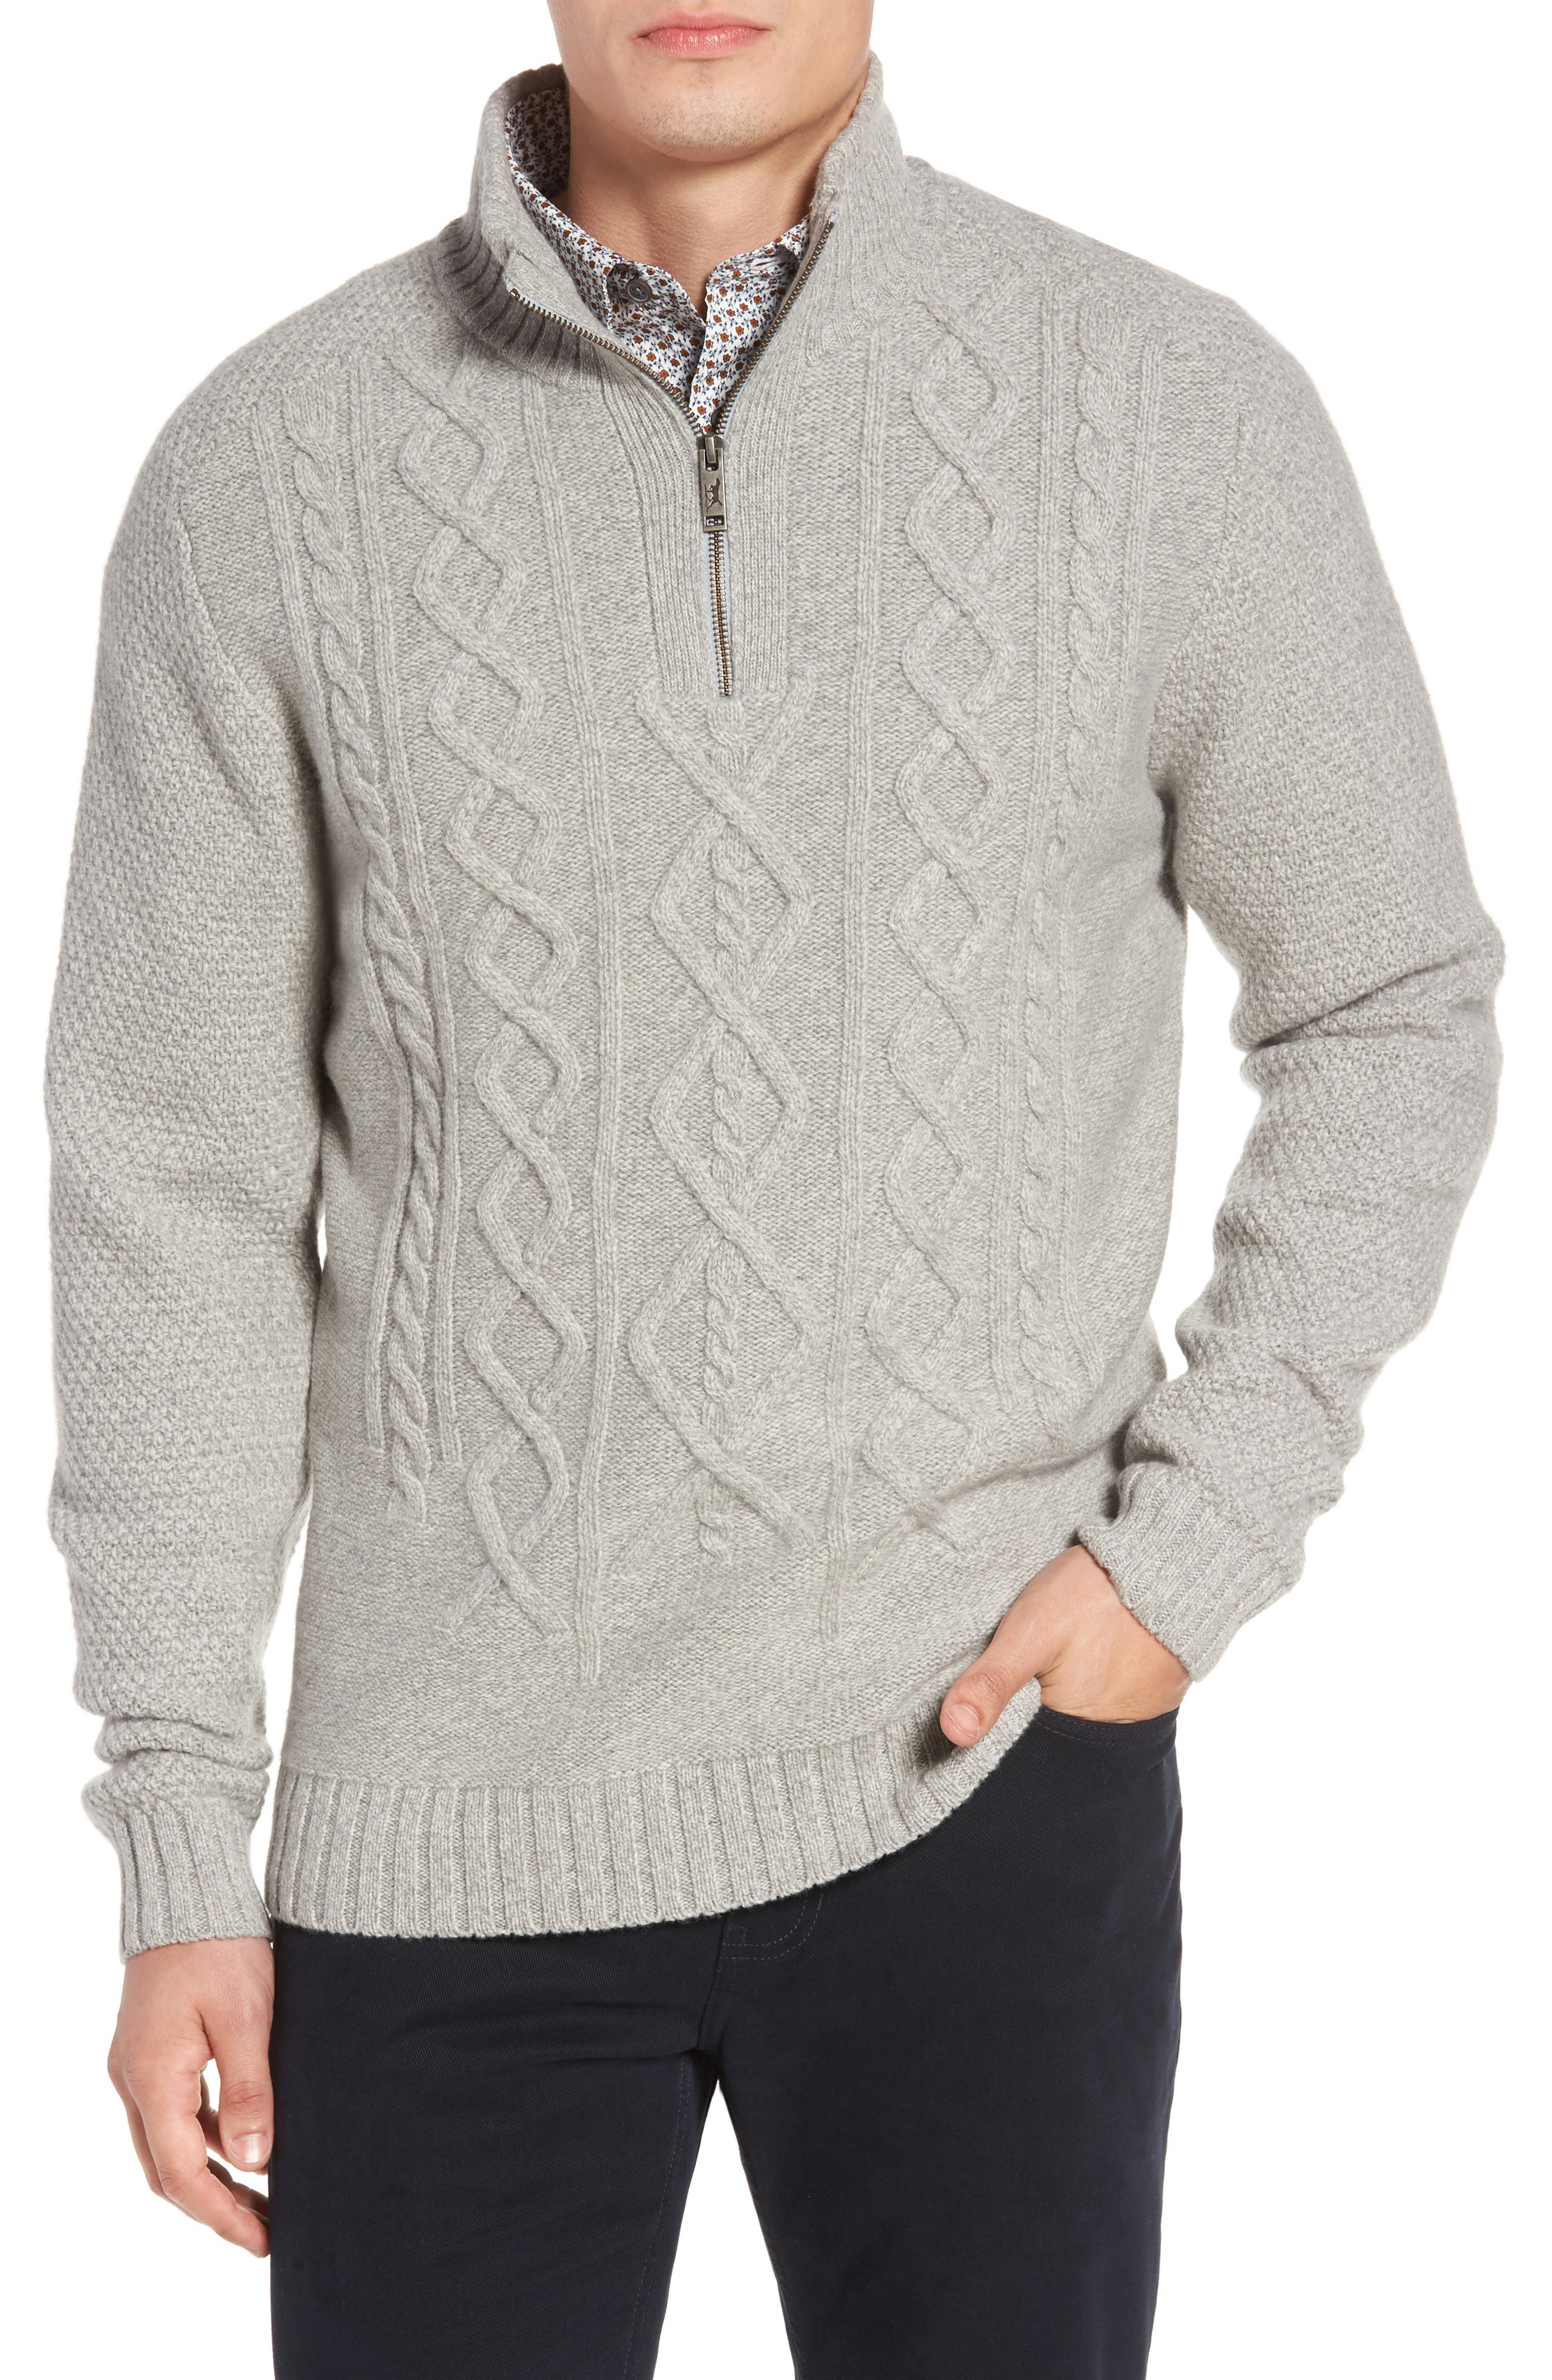 Cape Scoresby Wool Sweater,                         Main,                         color,